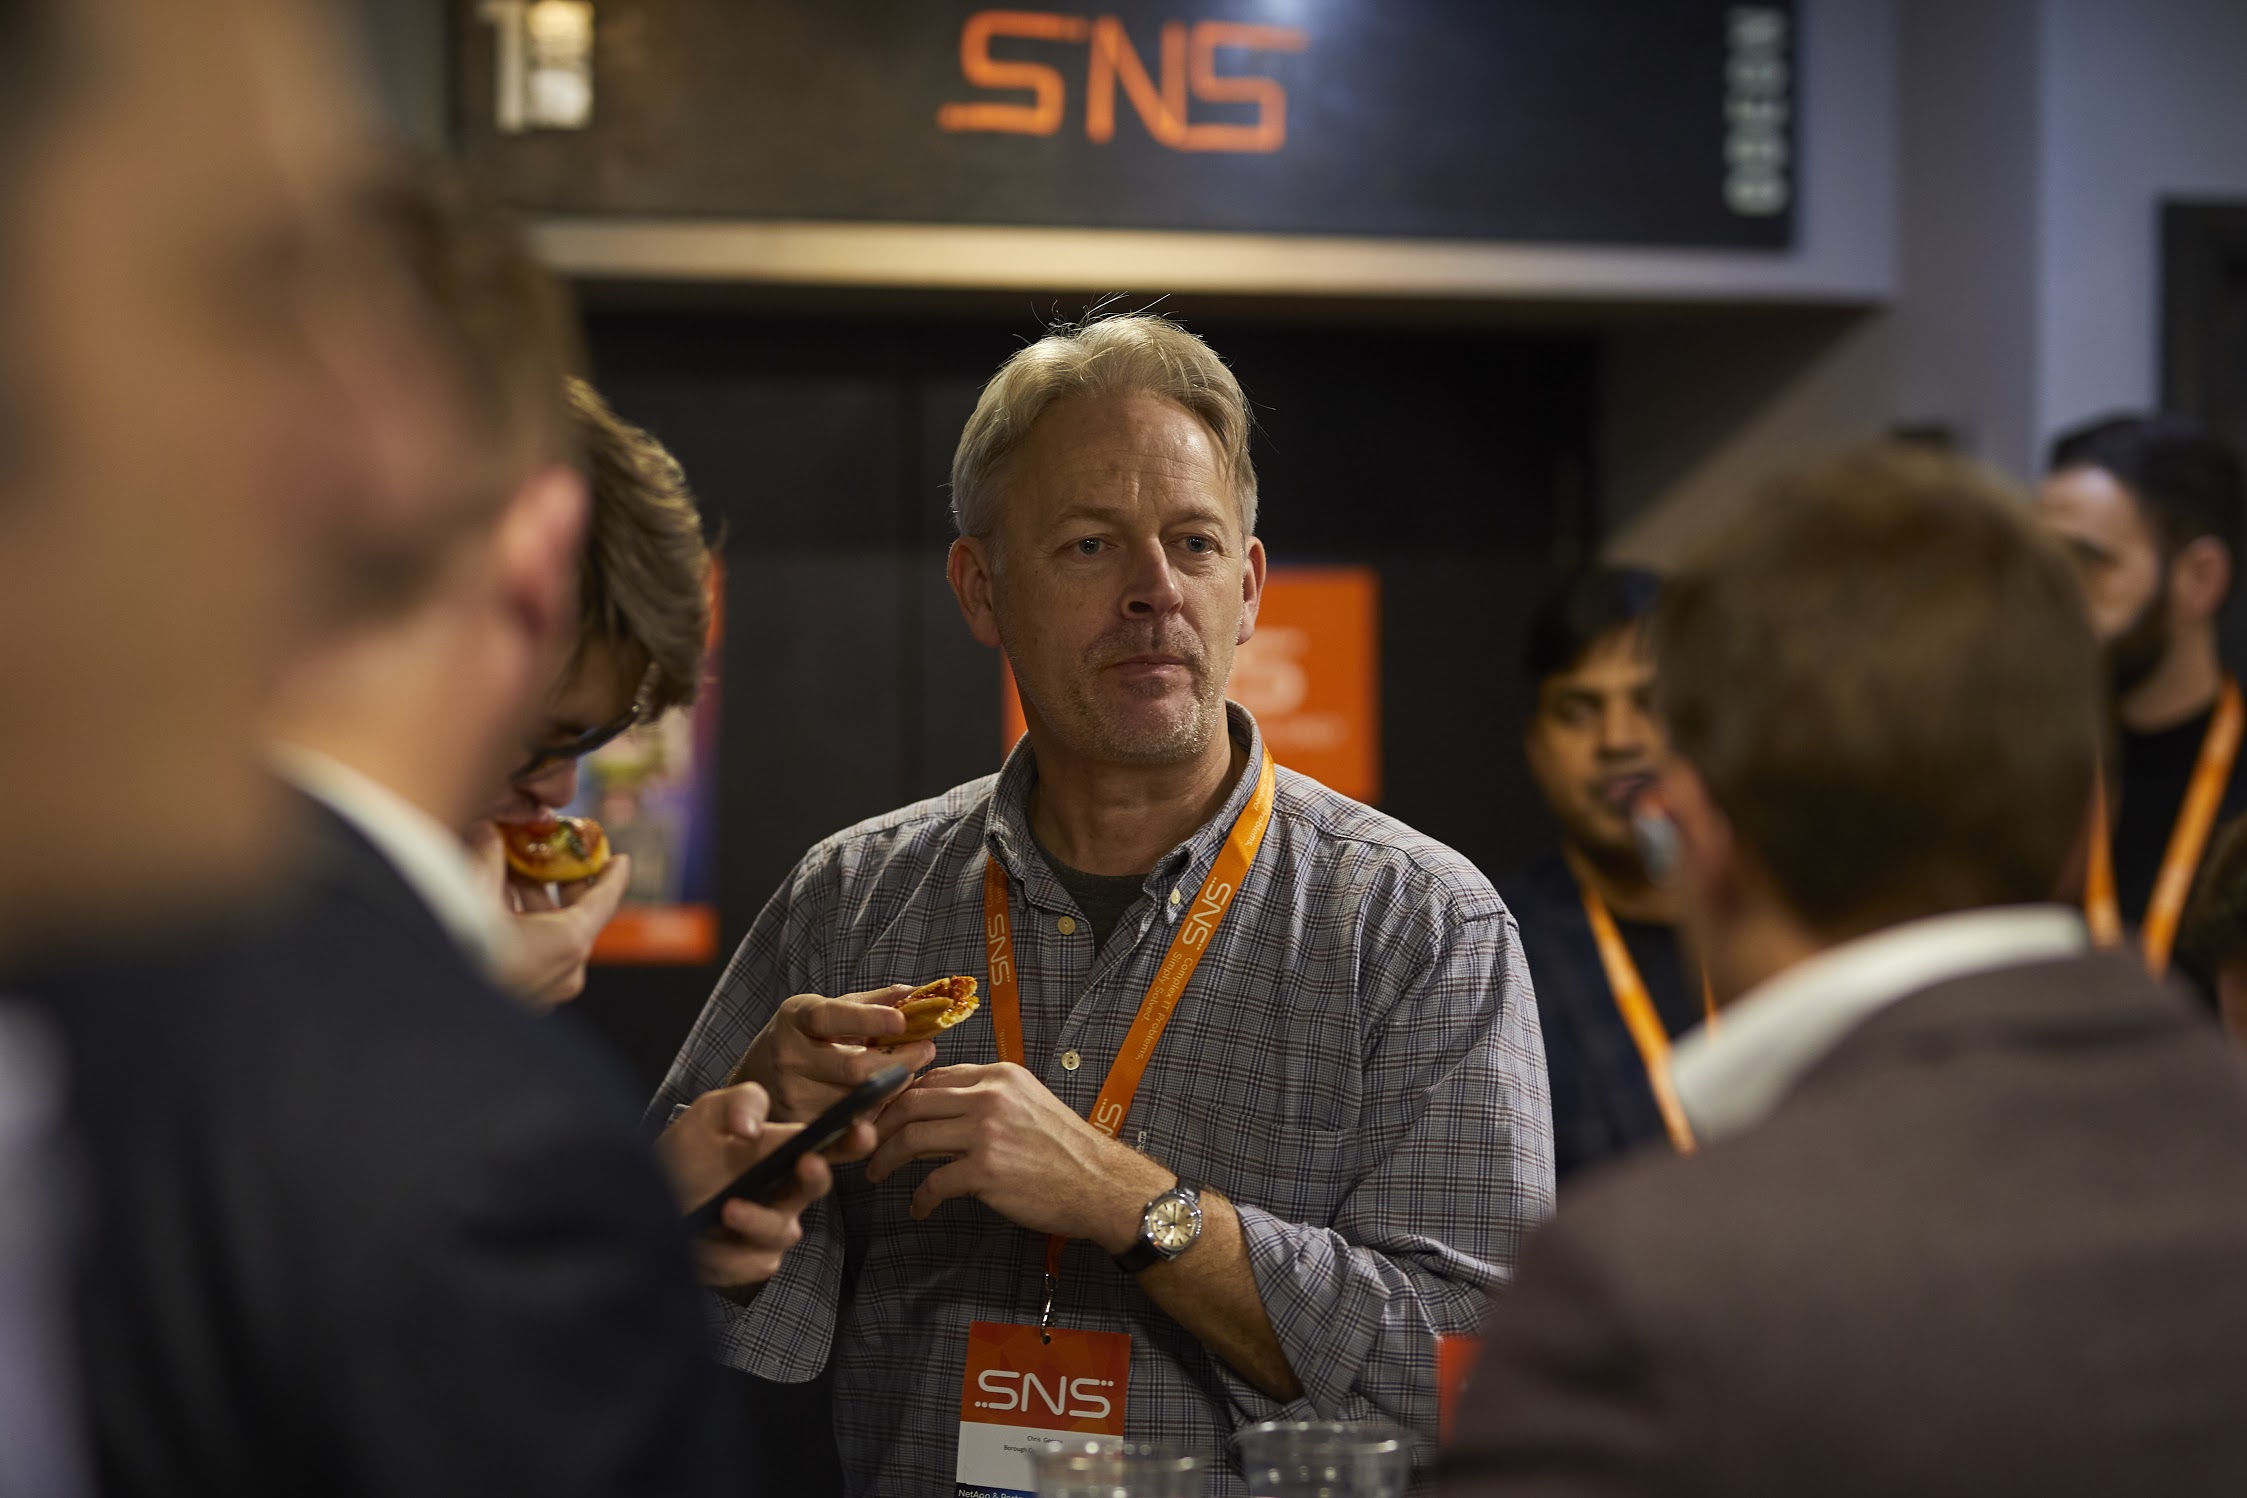 Networking and enjoying pizza at a SNS Event